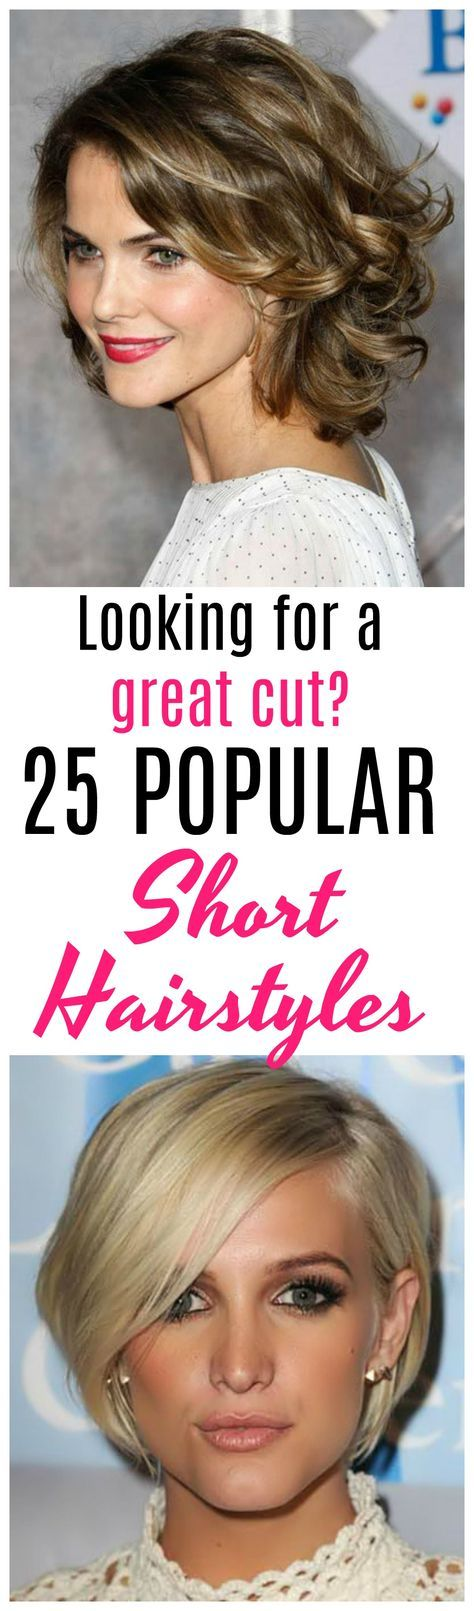 Are you thinking of getting your hair cut shorter? These 25 short hairstyles just might convince you and make you want to cut your hair. From curly and straight, to bangs and no bangs - get some fabulous ideas for a short hair style.